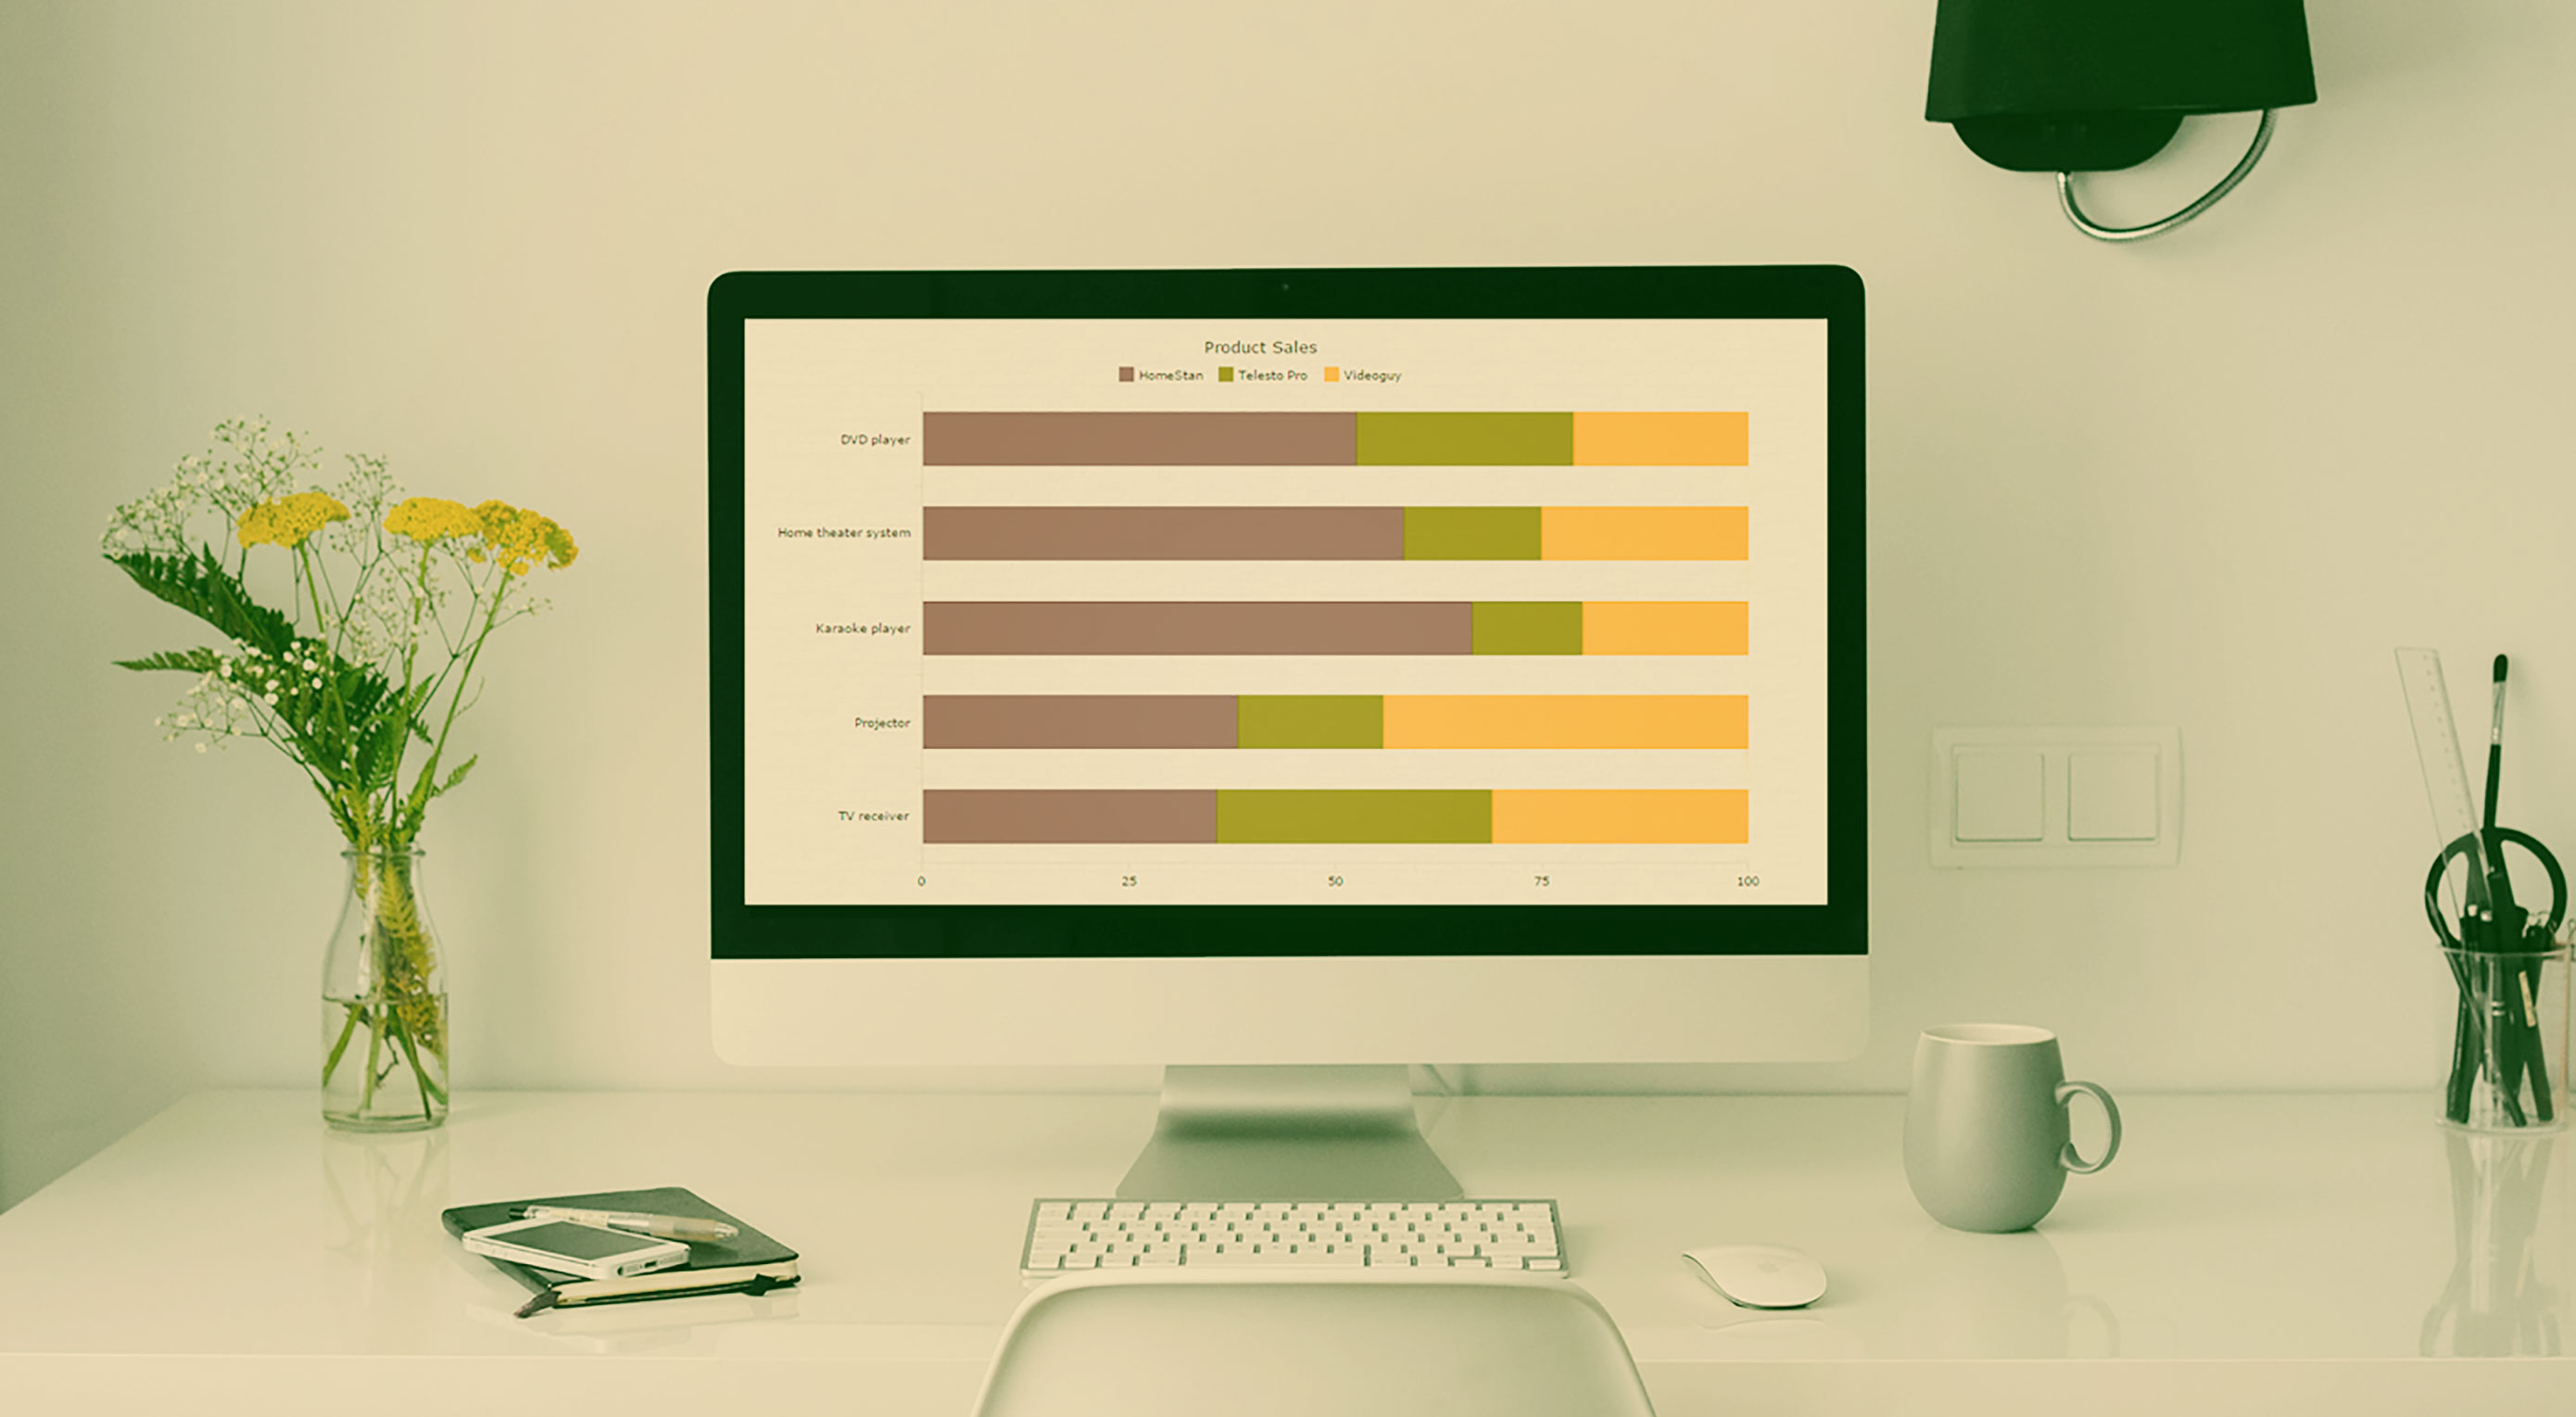 Creating Your First Interactive JavaScript Chart